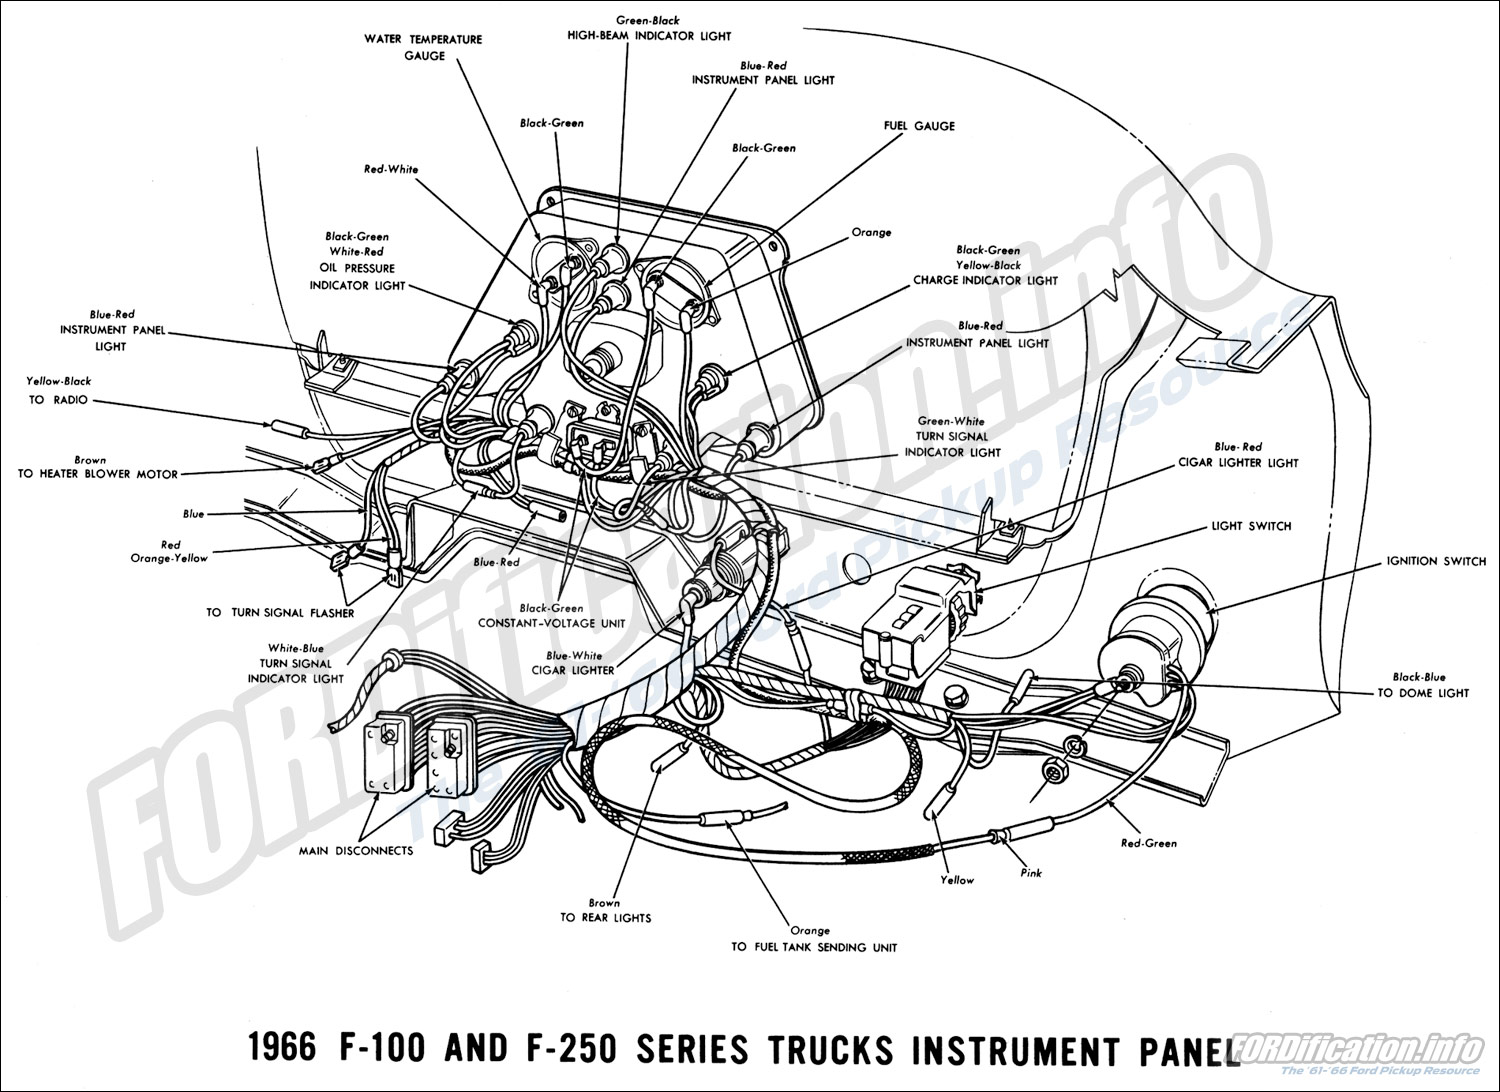 1966 Ford Truck Wiring Diagrams - FORDification.info - The ...